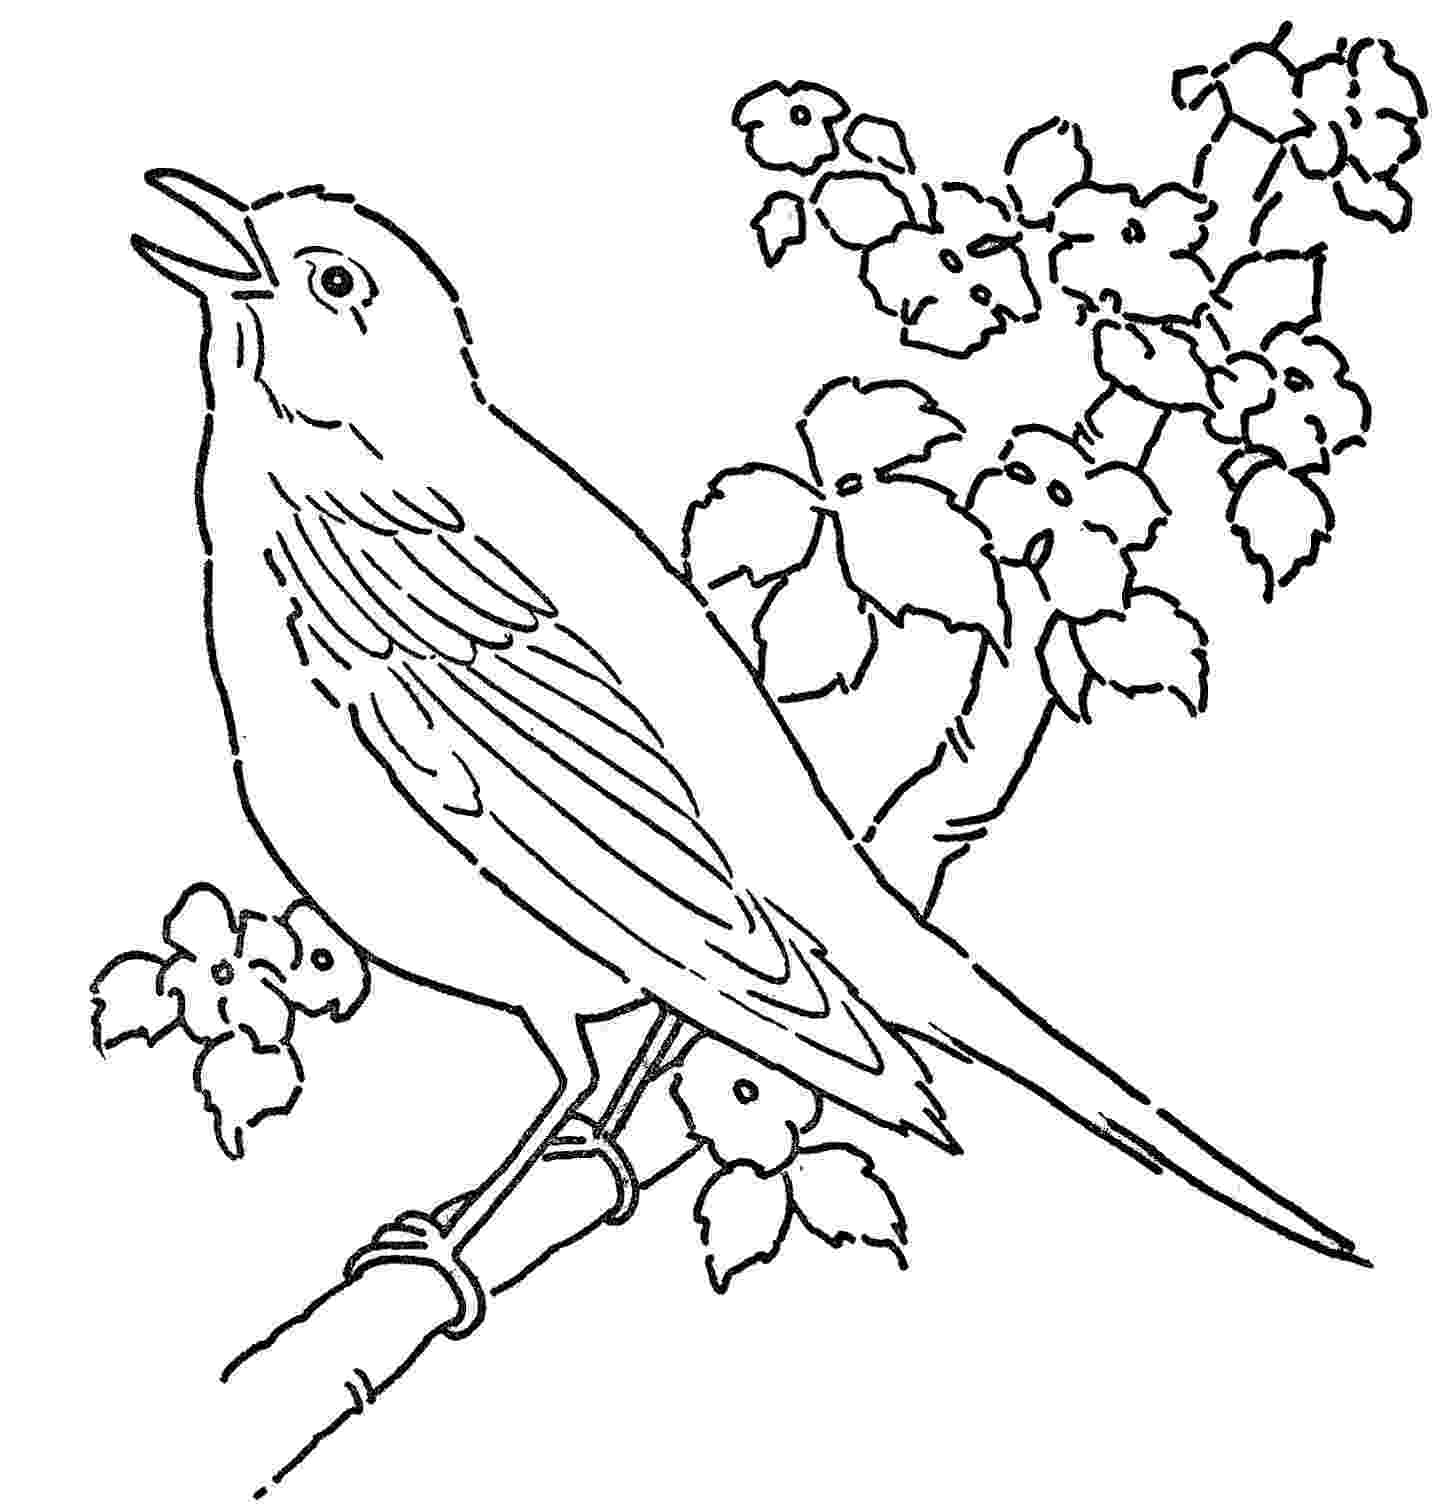 bird coloring bird coloring page others at this site bird coloring bird coloring